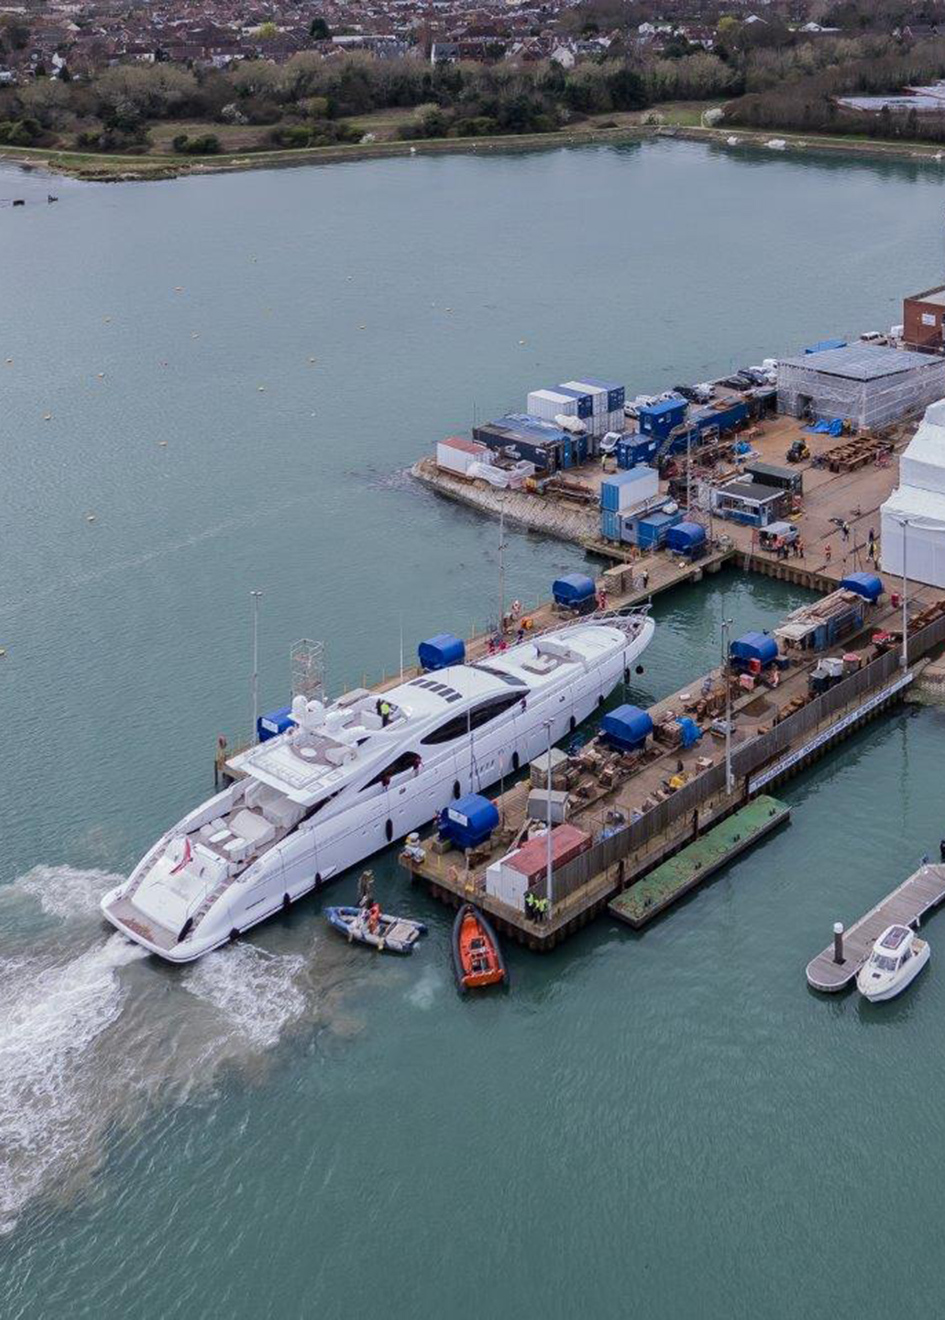 aerial-view-of-the-overmarine-superyacht